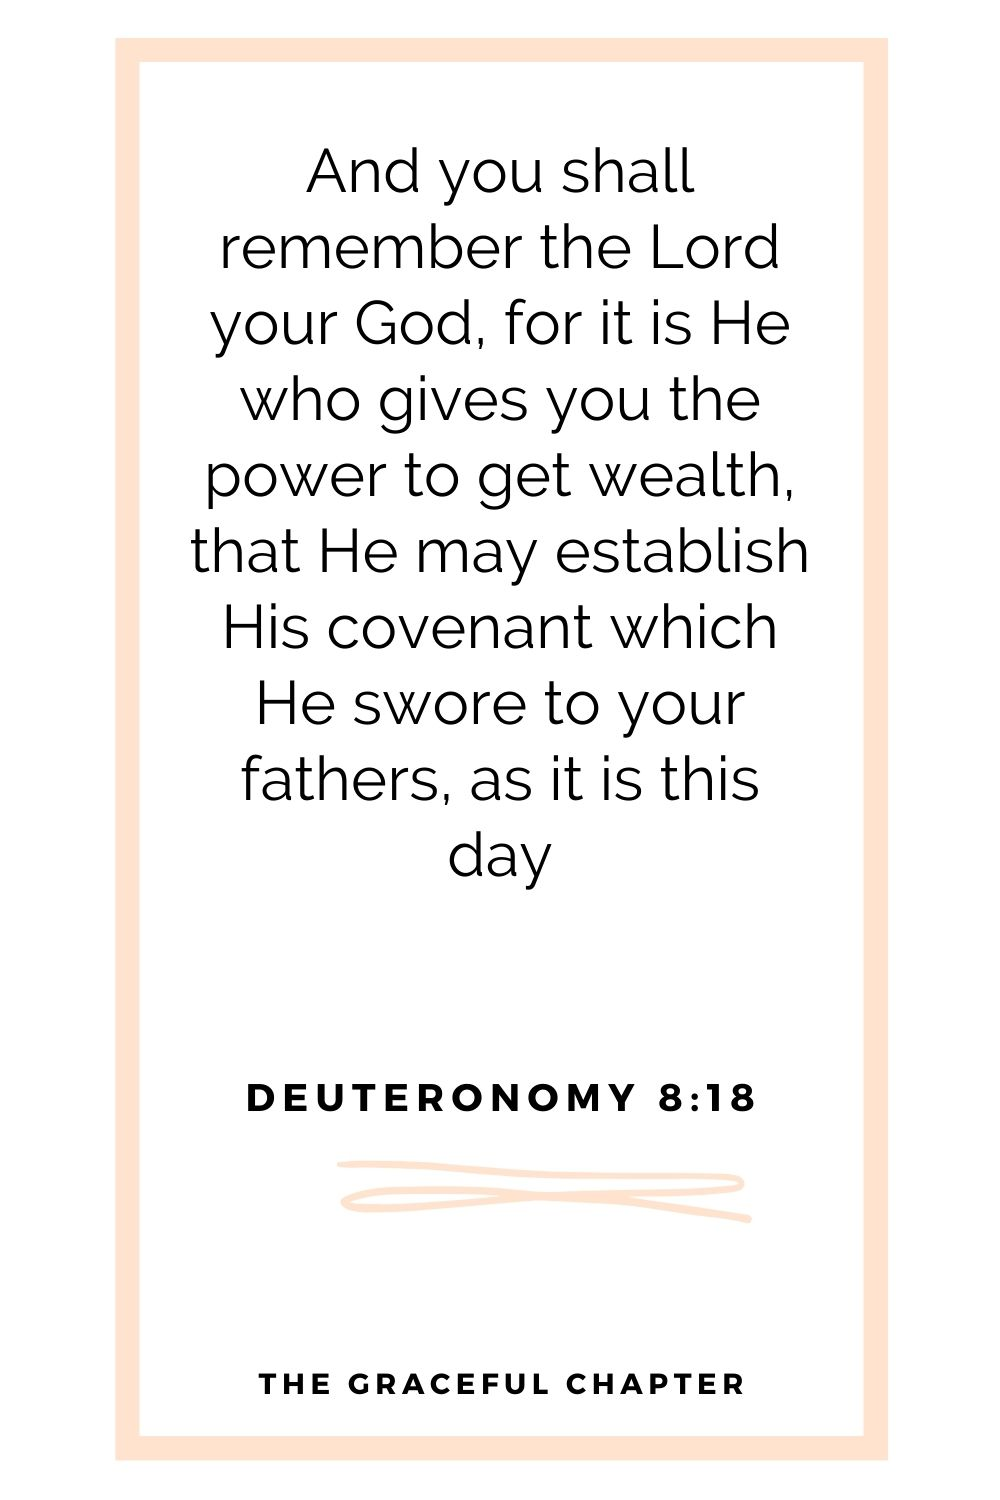 And you shall remember the Lord your God, for it is He who gives you power to get wealth, that He may establish His covenant which He swore to your fathers, as it is this day Deuteronomy 8:18